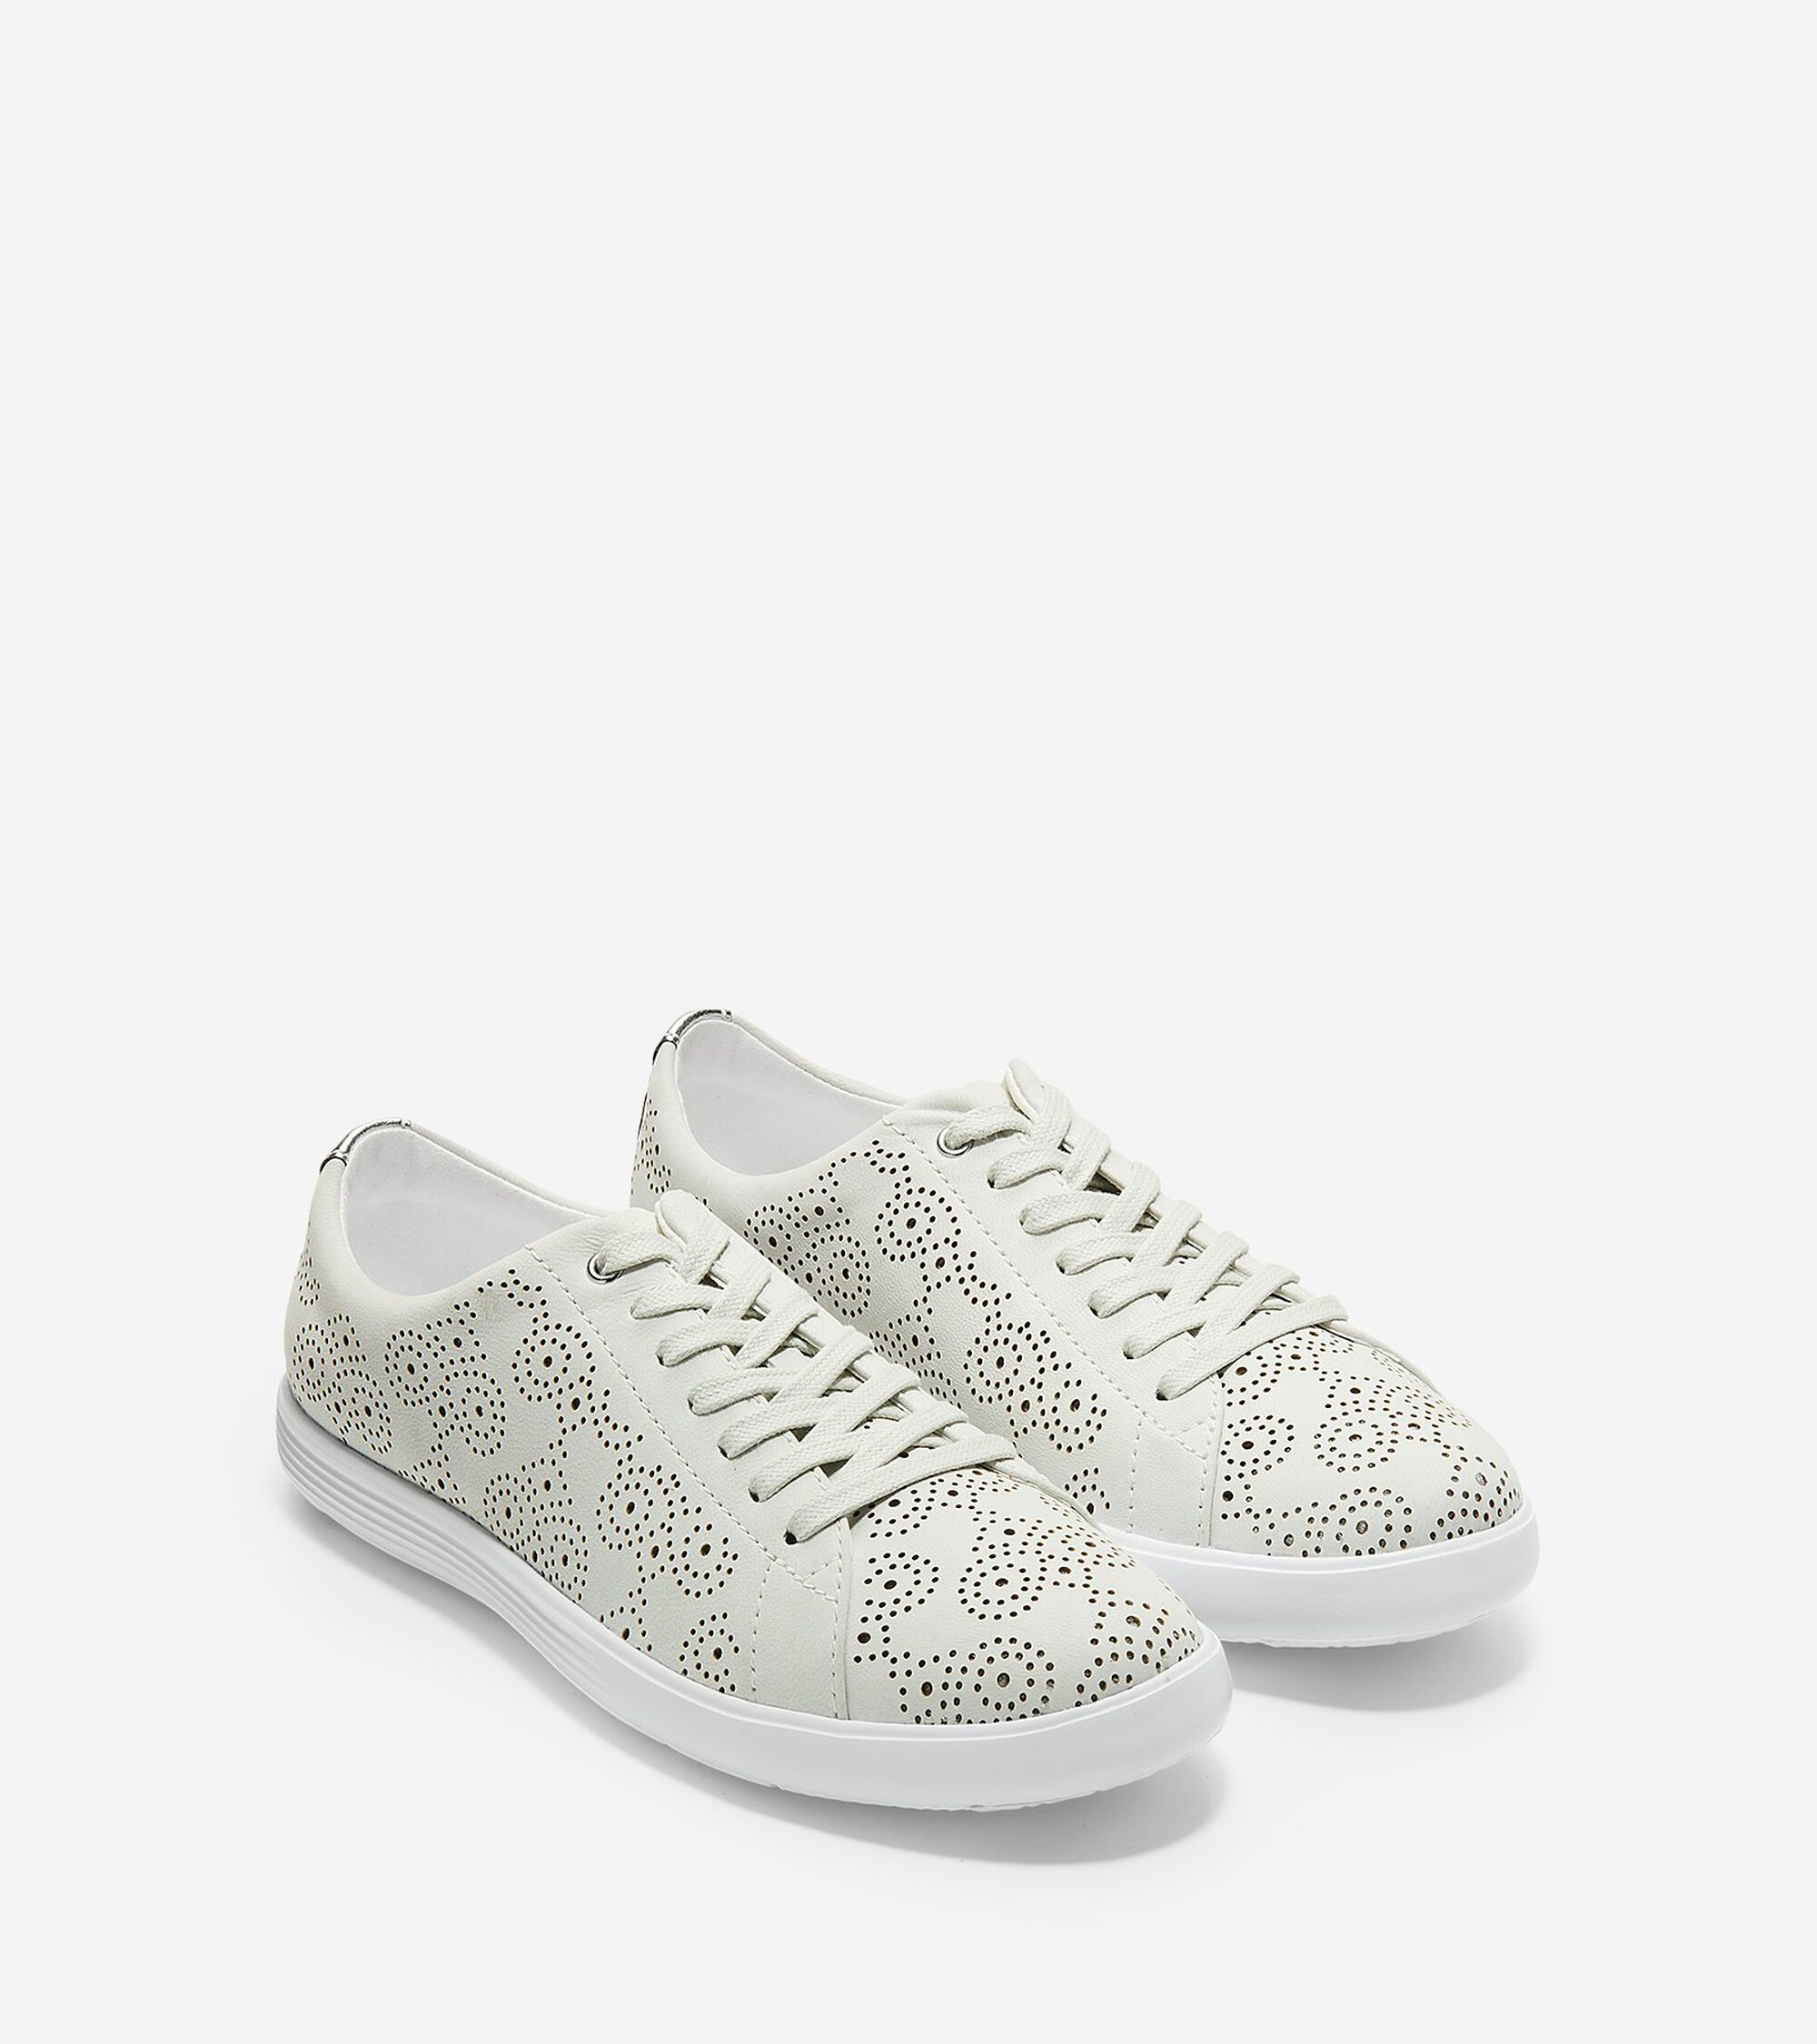 84784ff6ff8 ... Women s Grand Crosscourt Perforated Sneaker  Women s Grand Crosscourt  Perforated Sneaker.  COLEHAAN